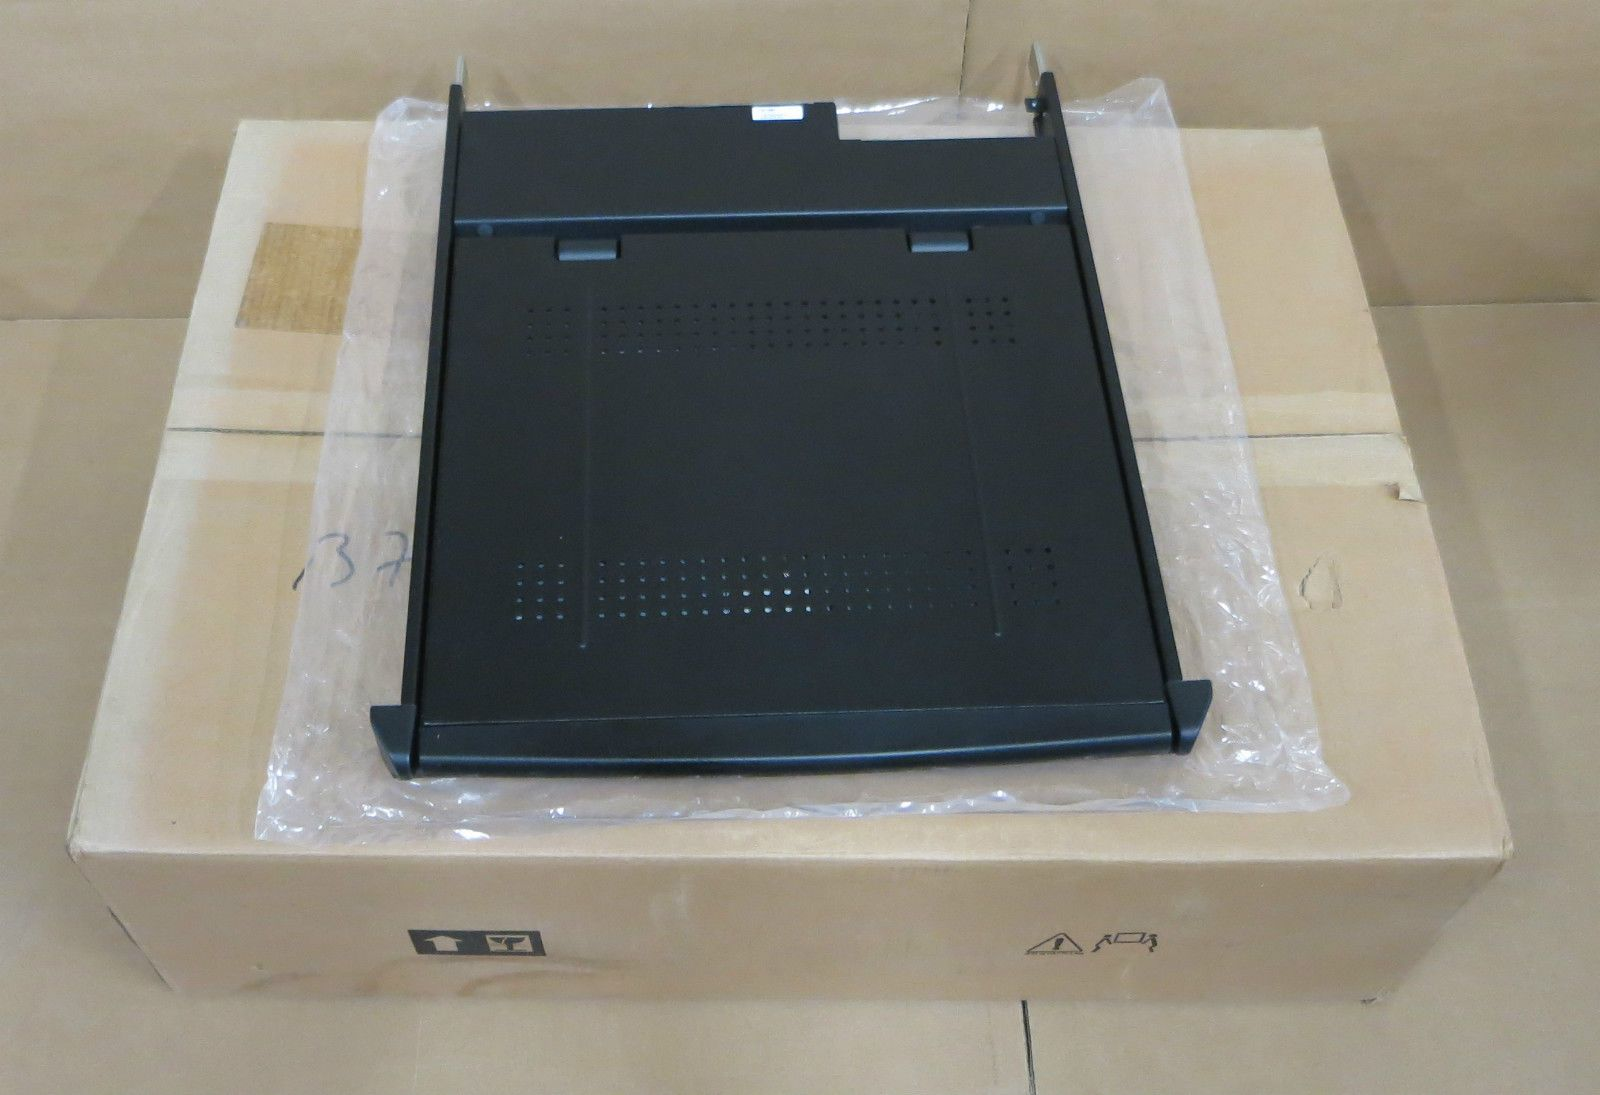 New Apc 17 Inch Lcd Tft Monitor Rackmount Console Keyboard